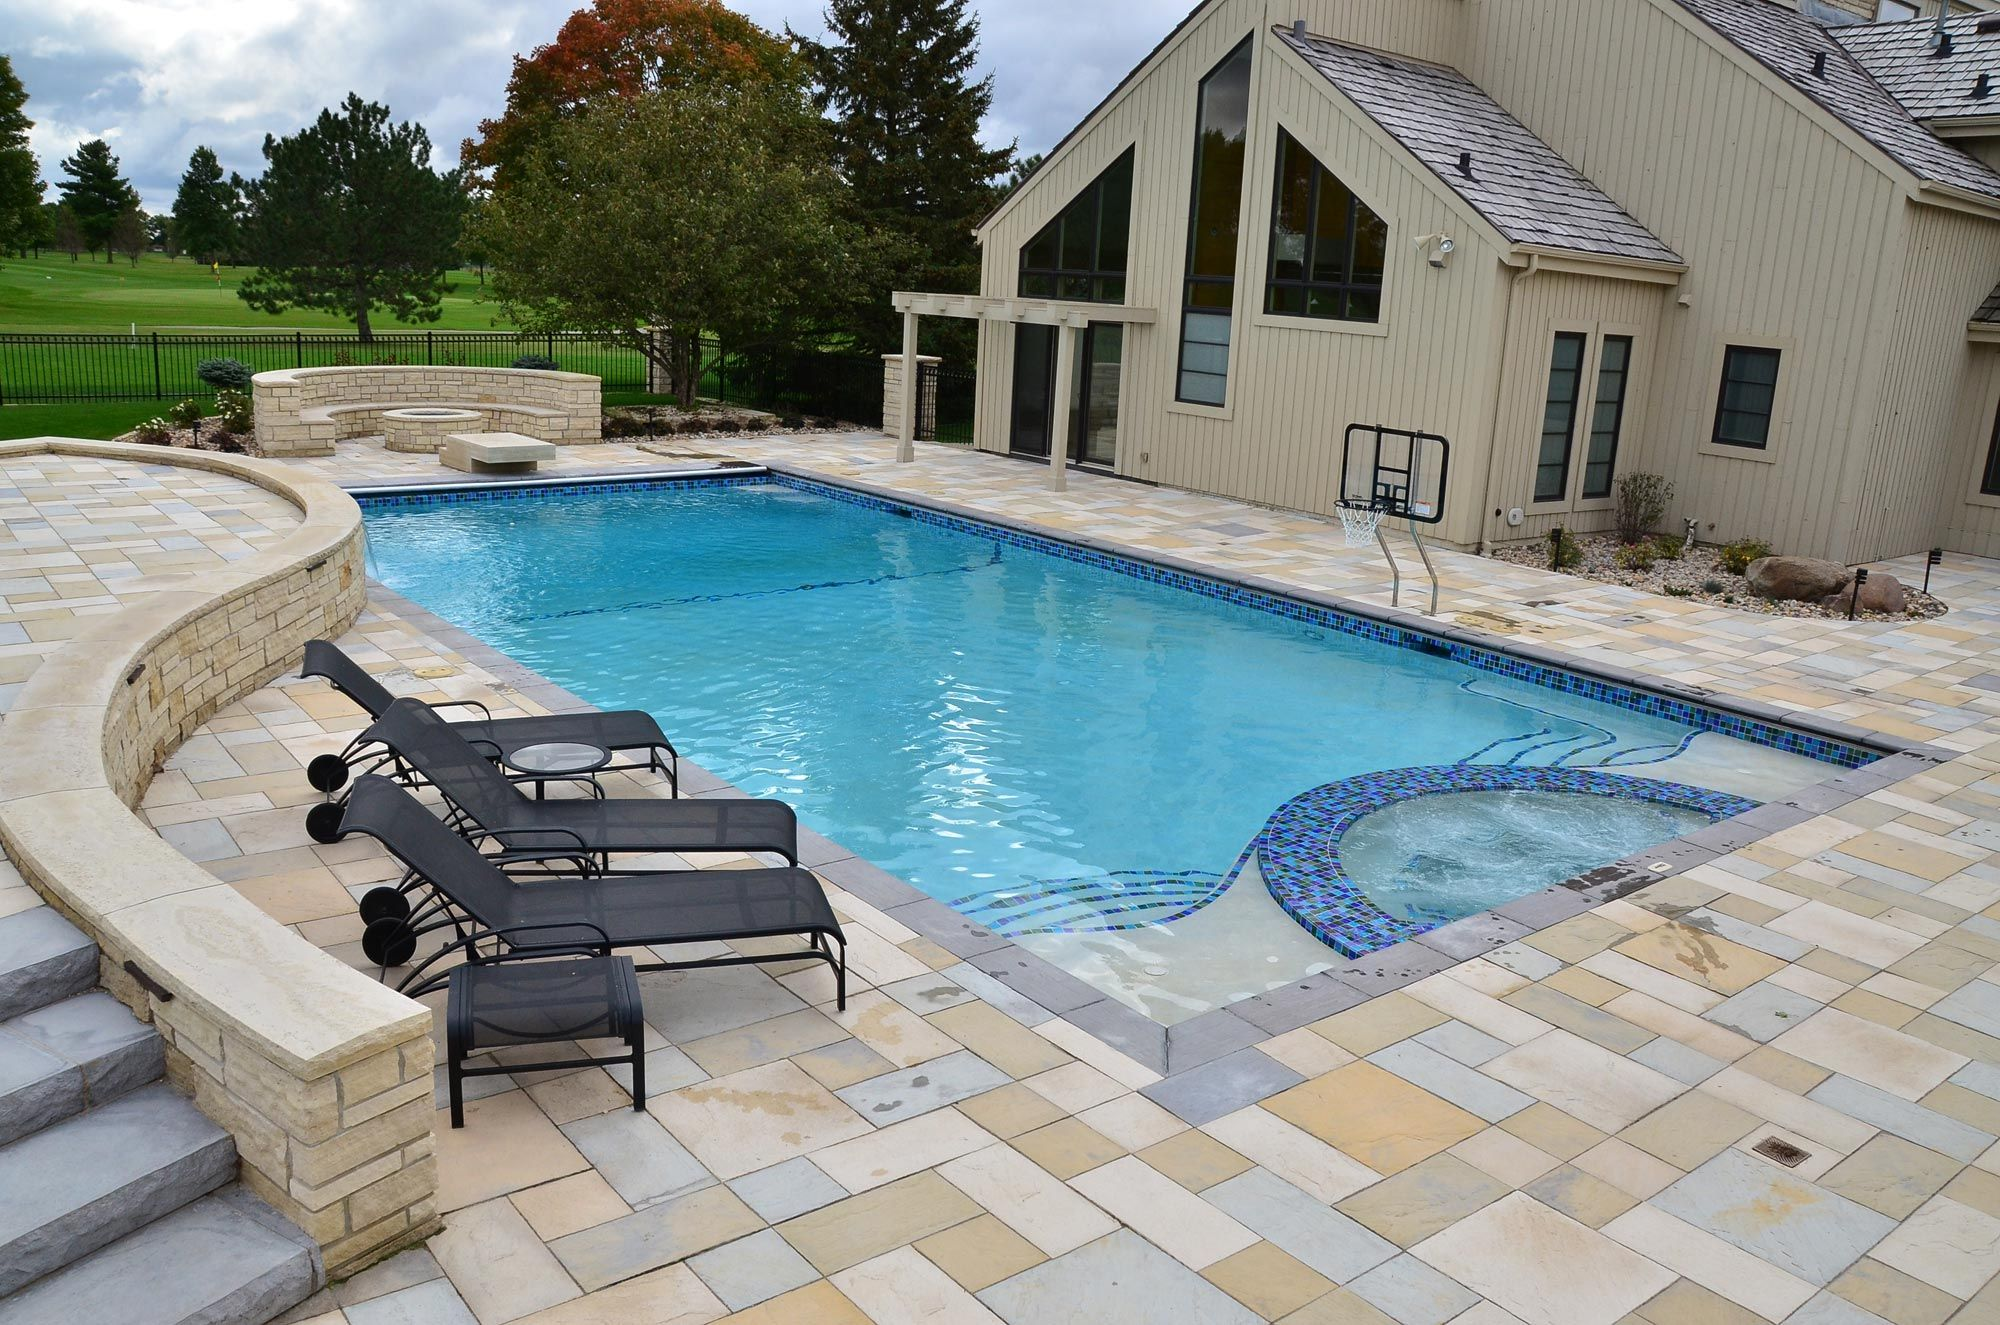 images of pools by pool tech midwest iowas premier pool builder - Rectangle Pool With Spa